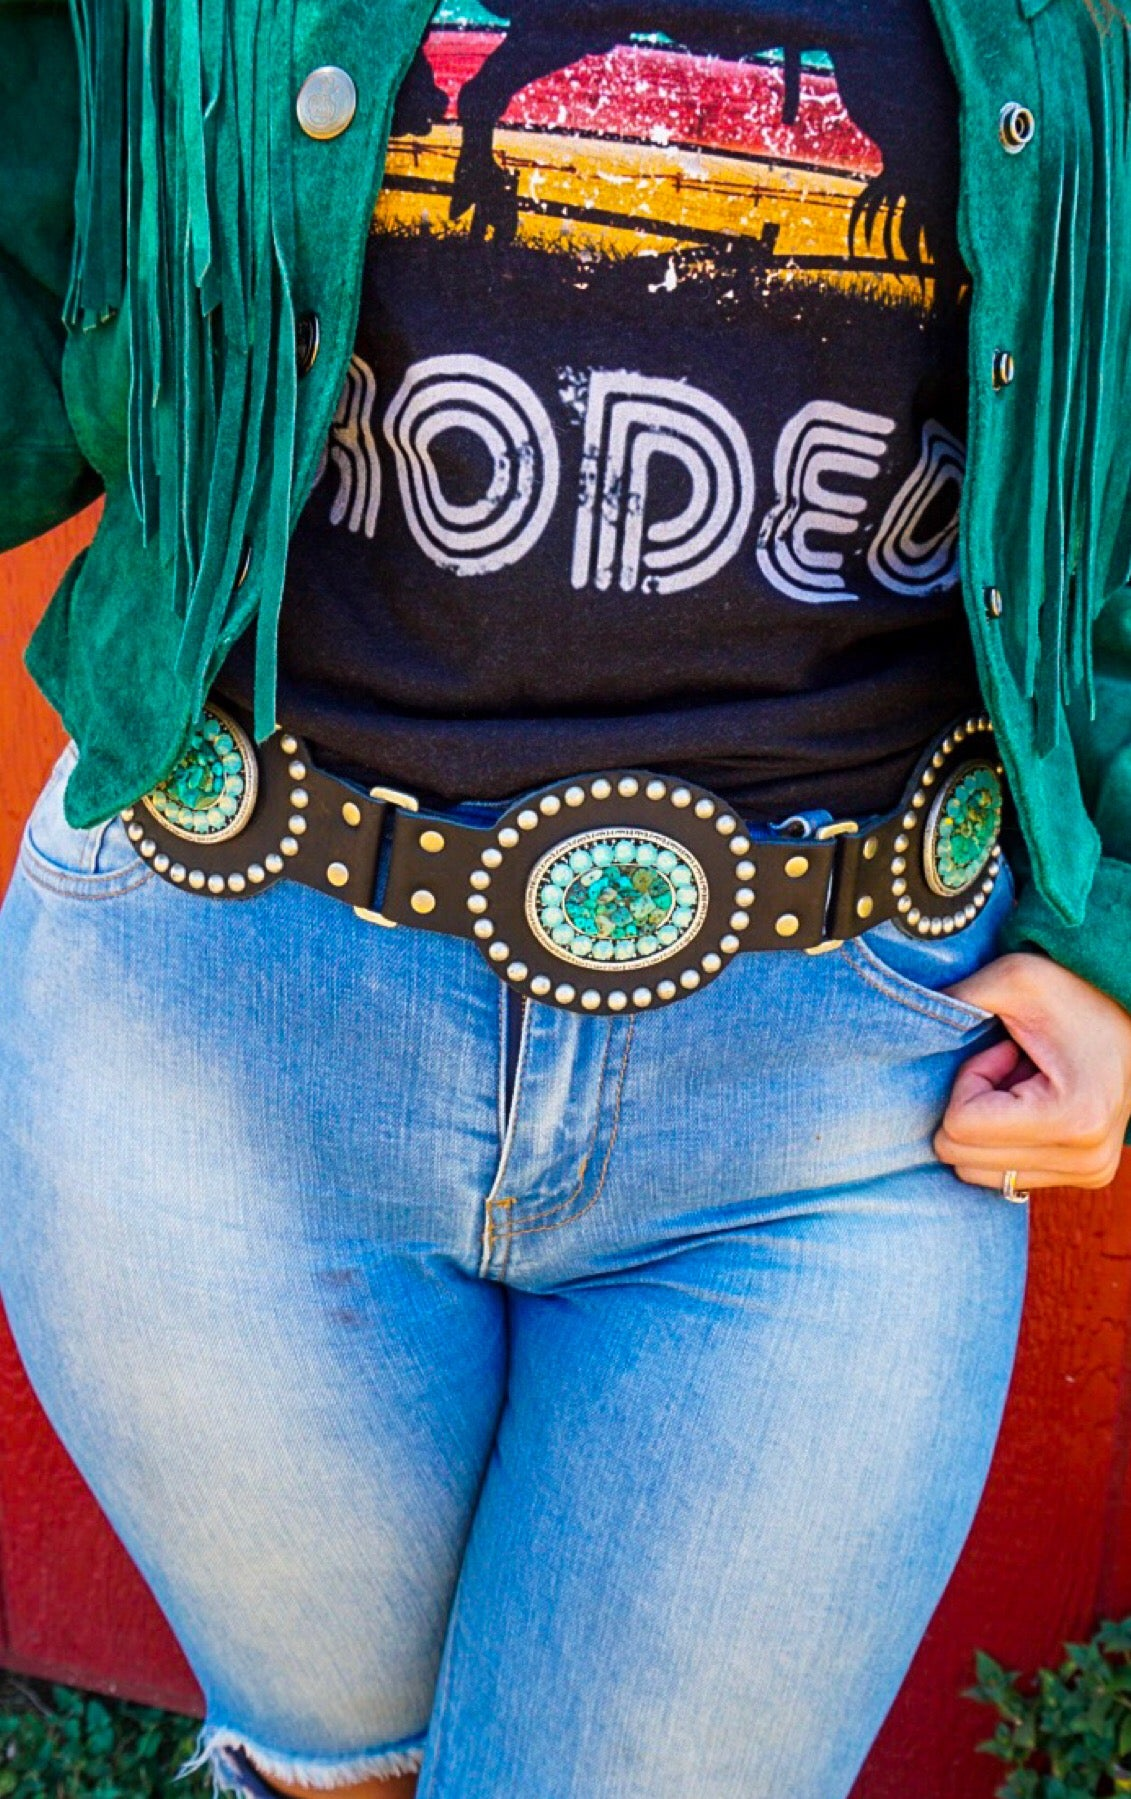 The Kodiak - black concho belt